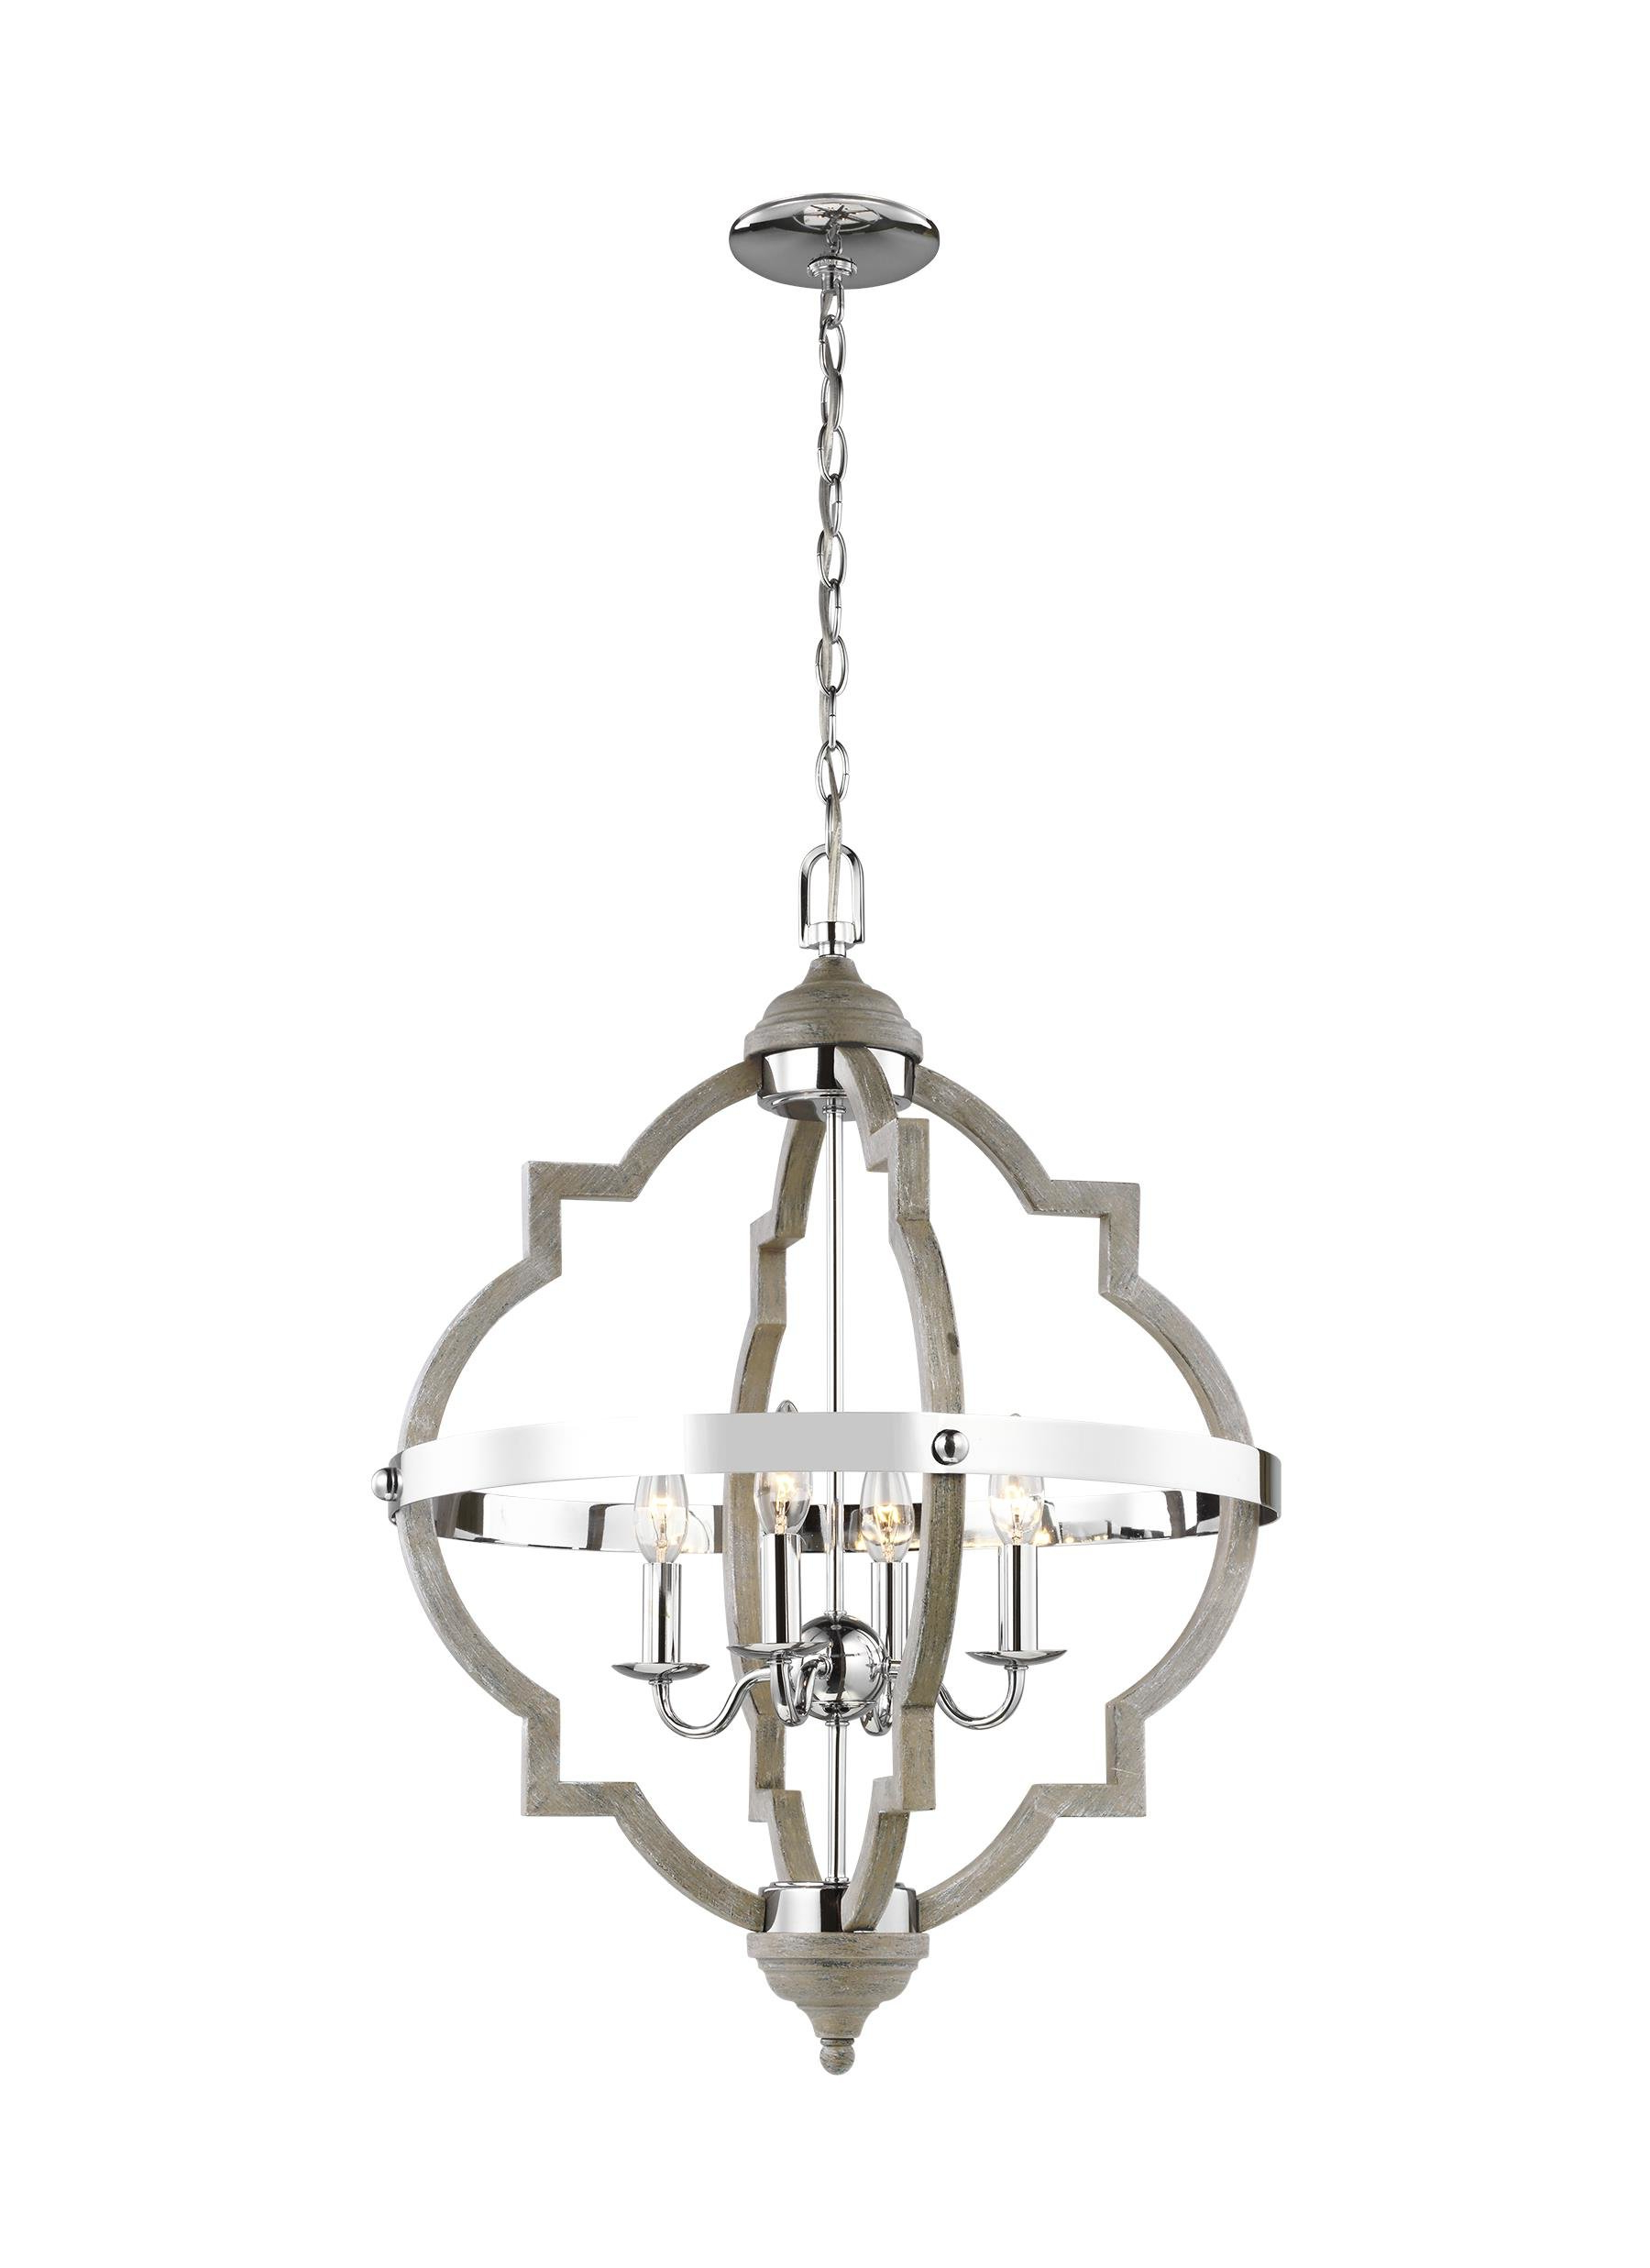 2019 Bennington 4 Light Candle Style Chandeliers With Bennington 4 Light Candle Style Chandelier (View 3 of 20)